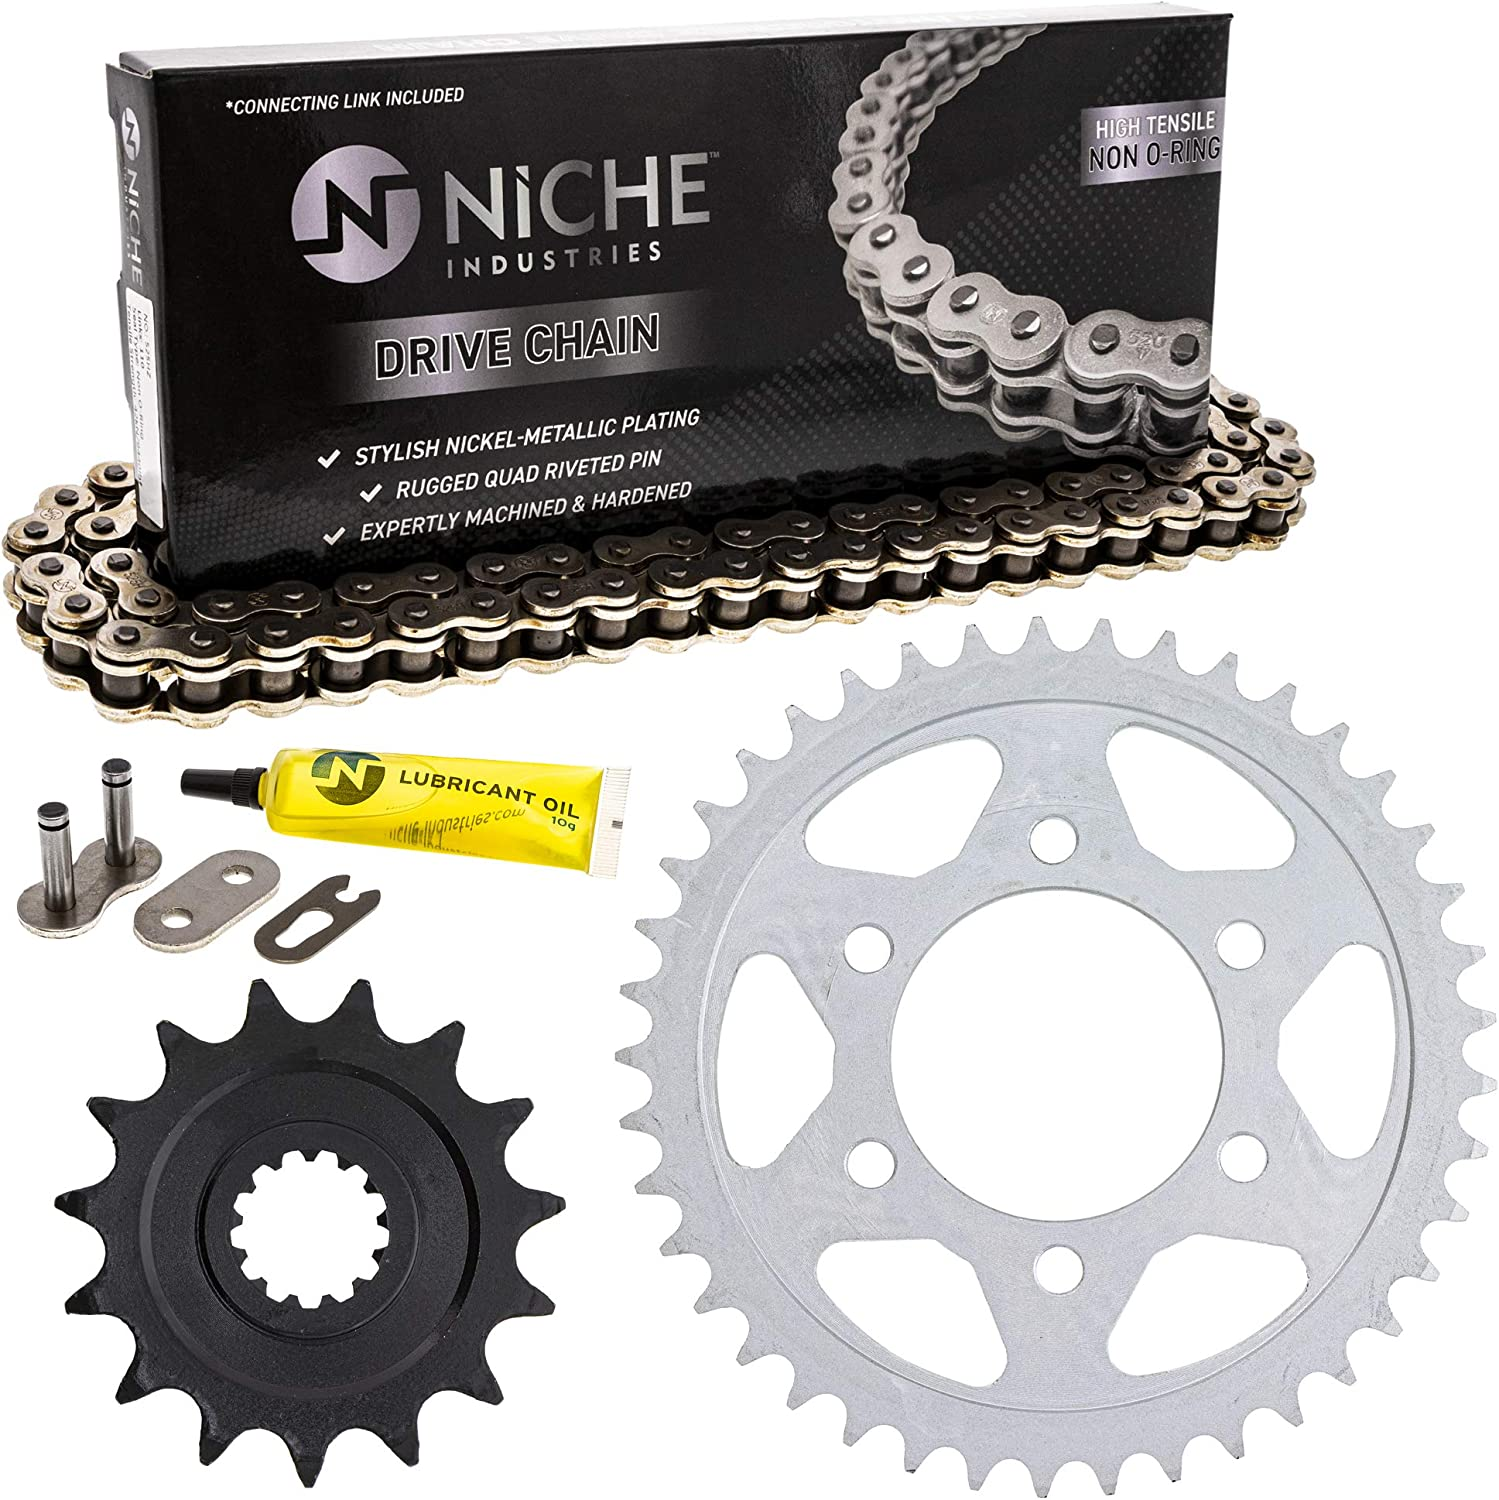 NICHE Drive Sprocket Chain Combo for Kawasaki Z1000SX Ninja 1000 ZX1000 Front 15 Rear 41 Tooth 525V O-Ring 112 Links